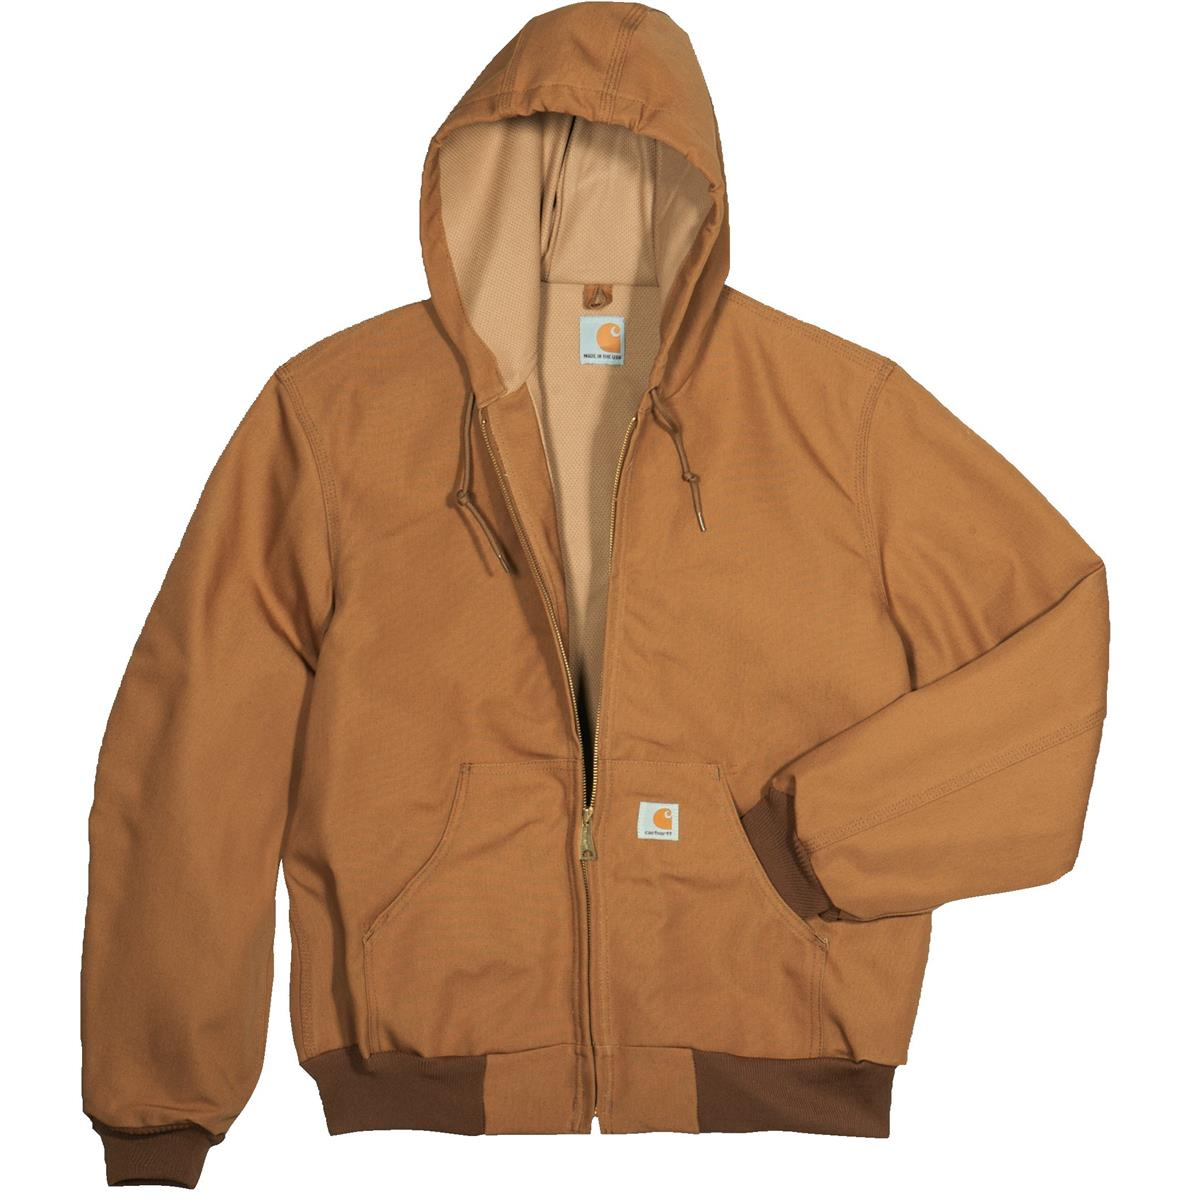 J131 CARHARTT BROWN.jpg